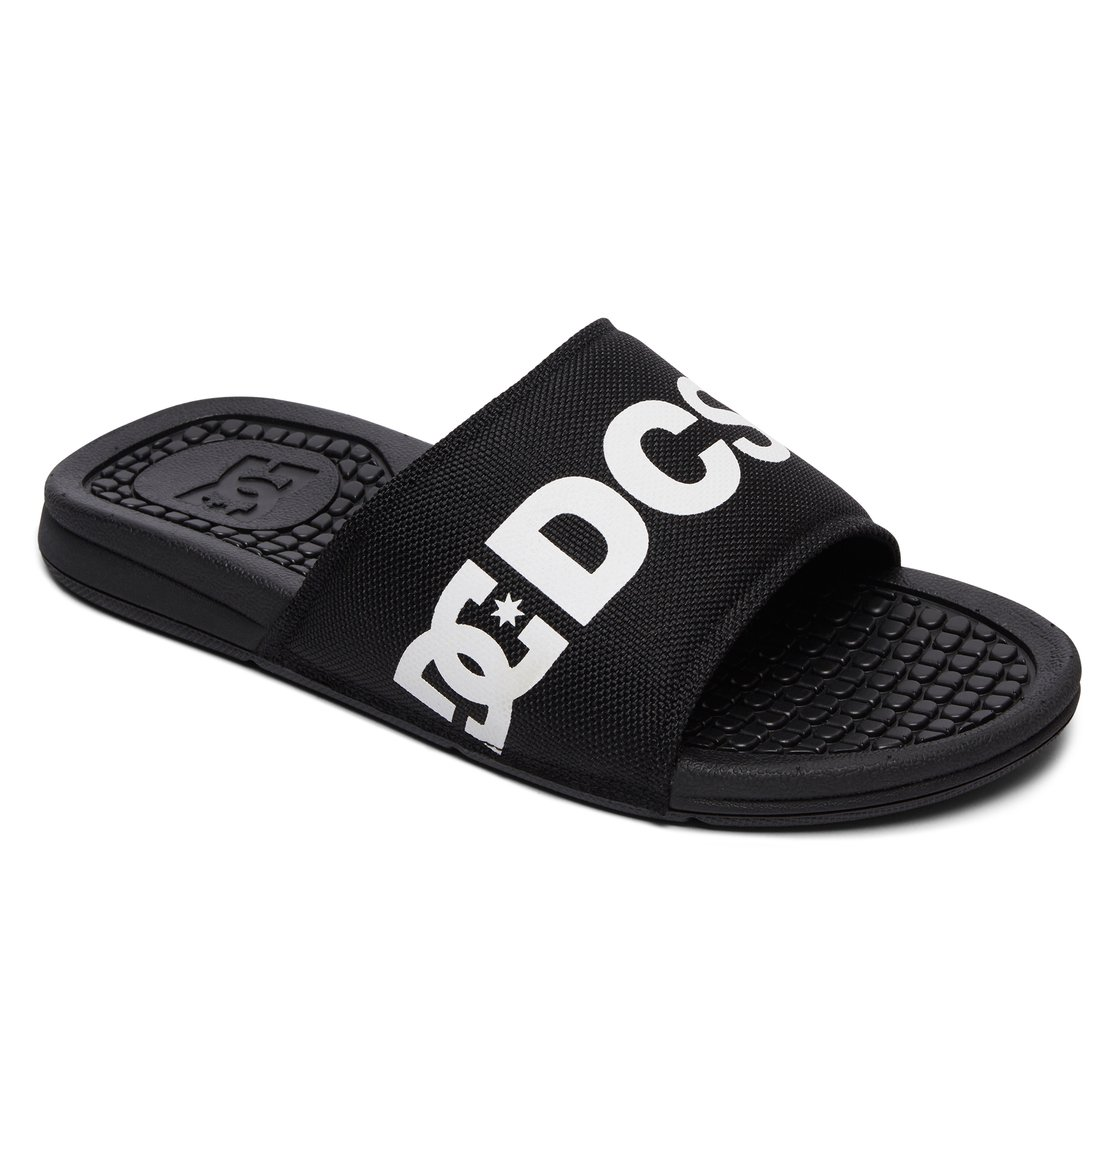 0ee1126c8367f DC Shoes Men s Bolsa SP Slider Sandals SLIPPER Beachwear Black BKW ...